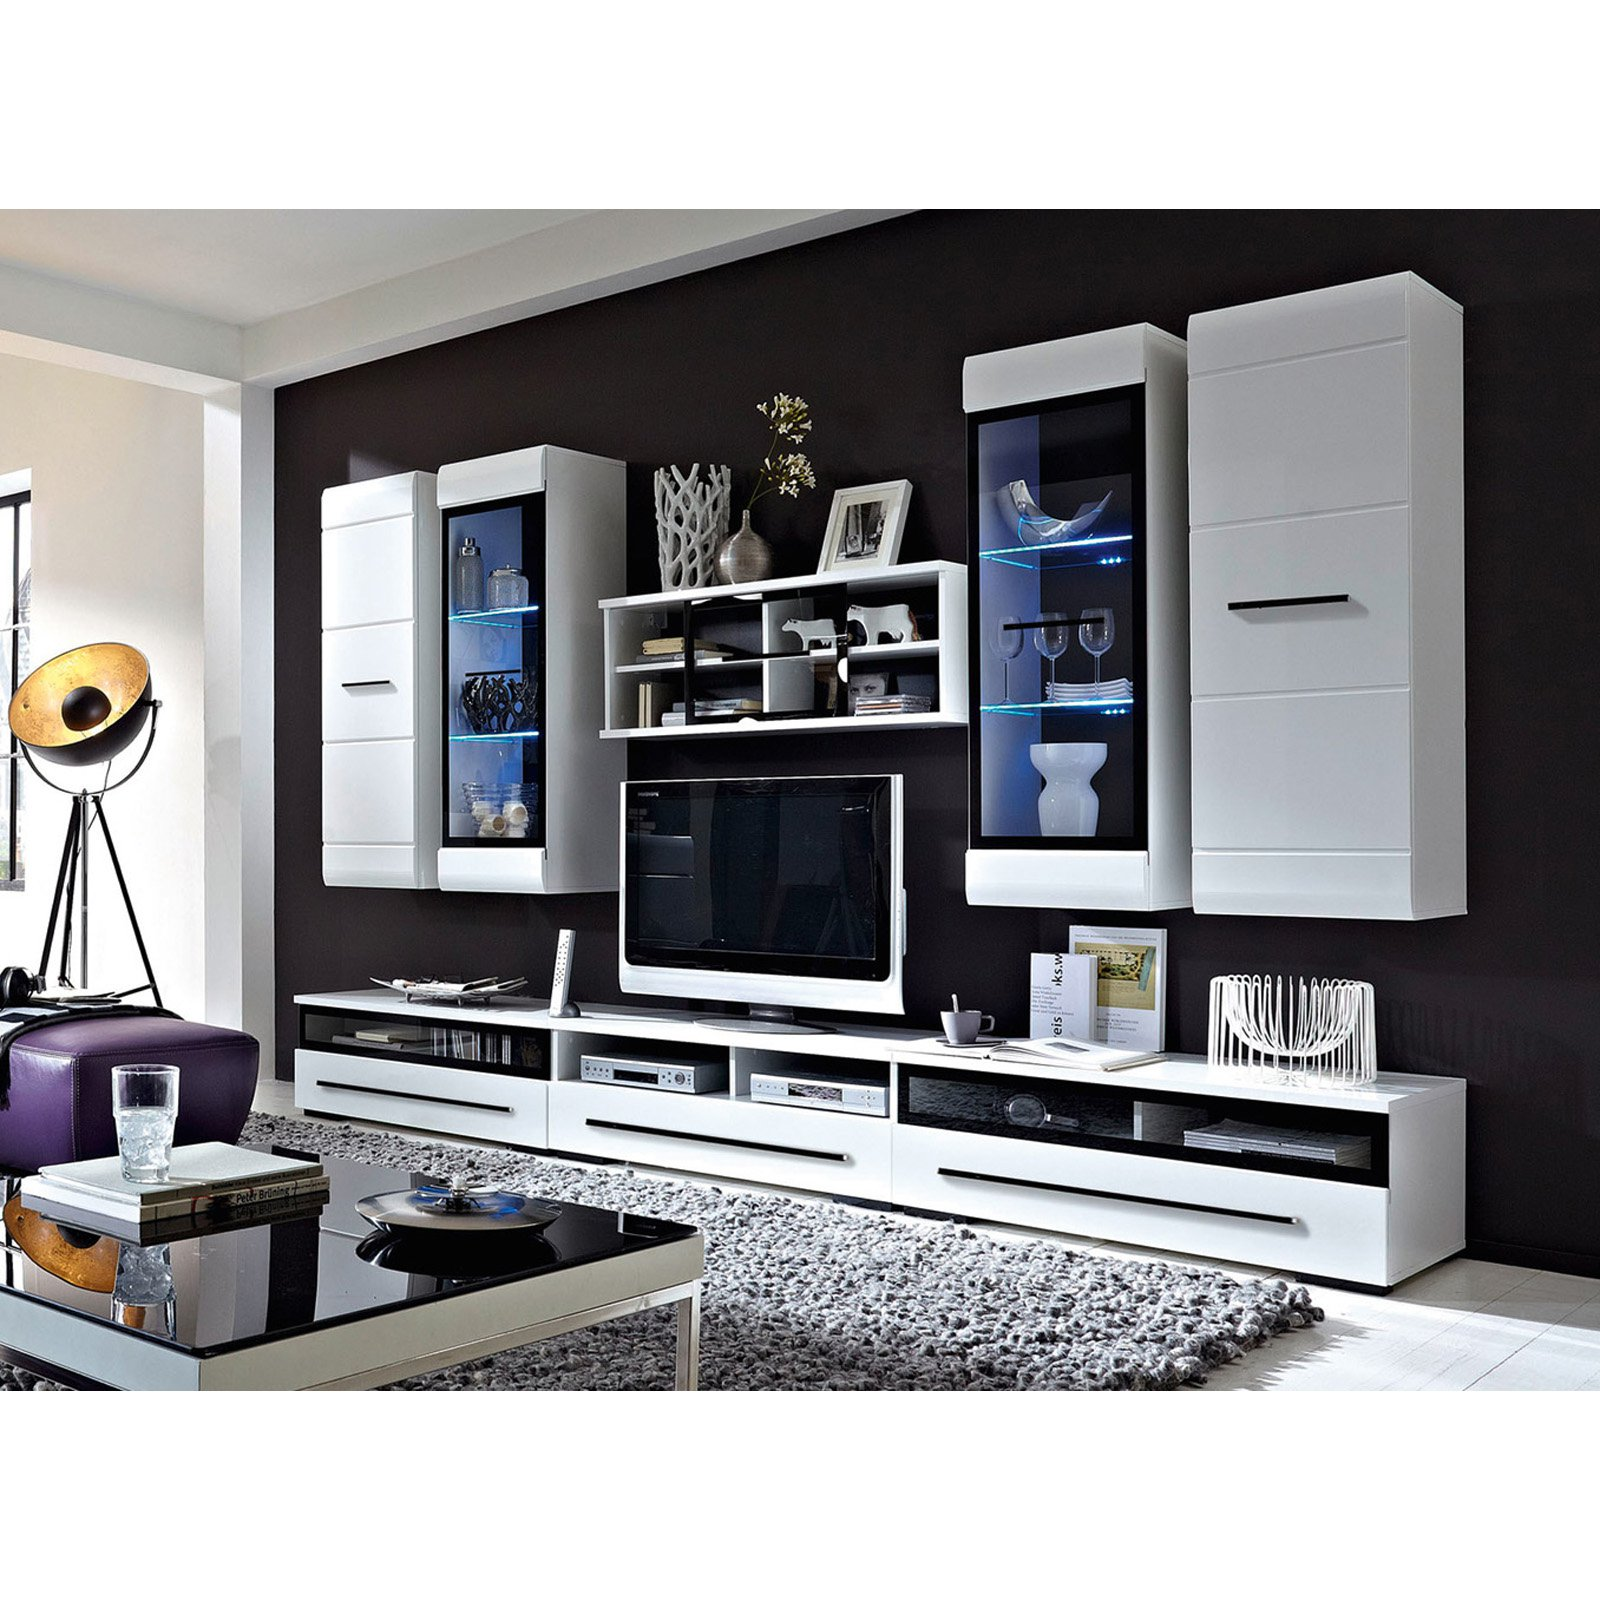 Black Red White Fever TV Entertainment Center Wall Unit